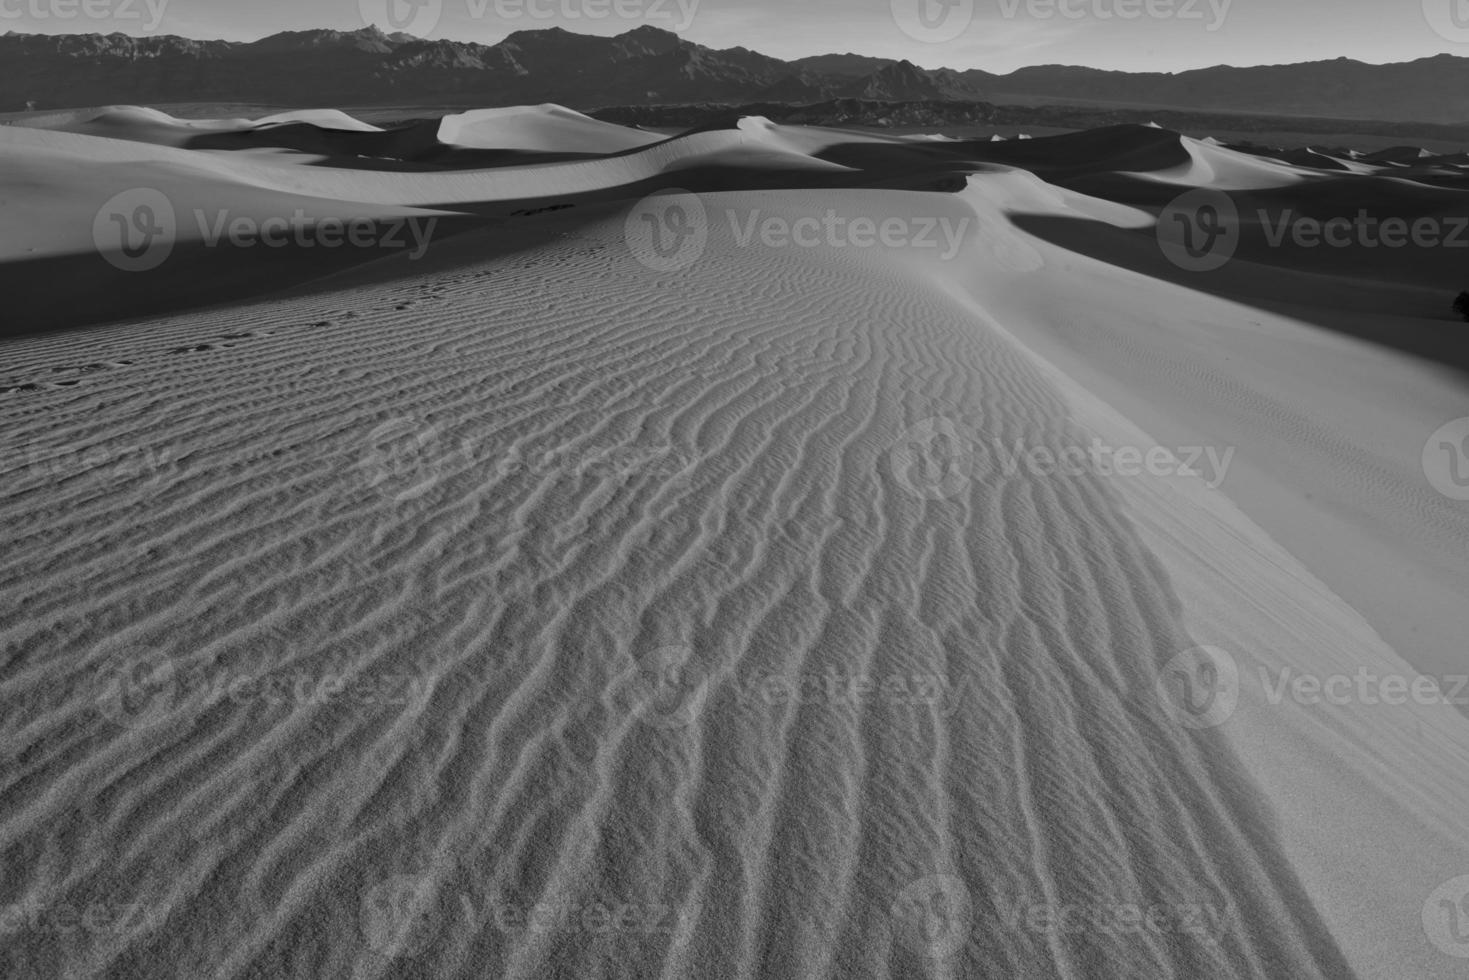 Sand dunes and mountains in desert landscape photo